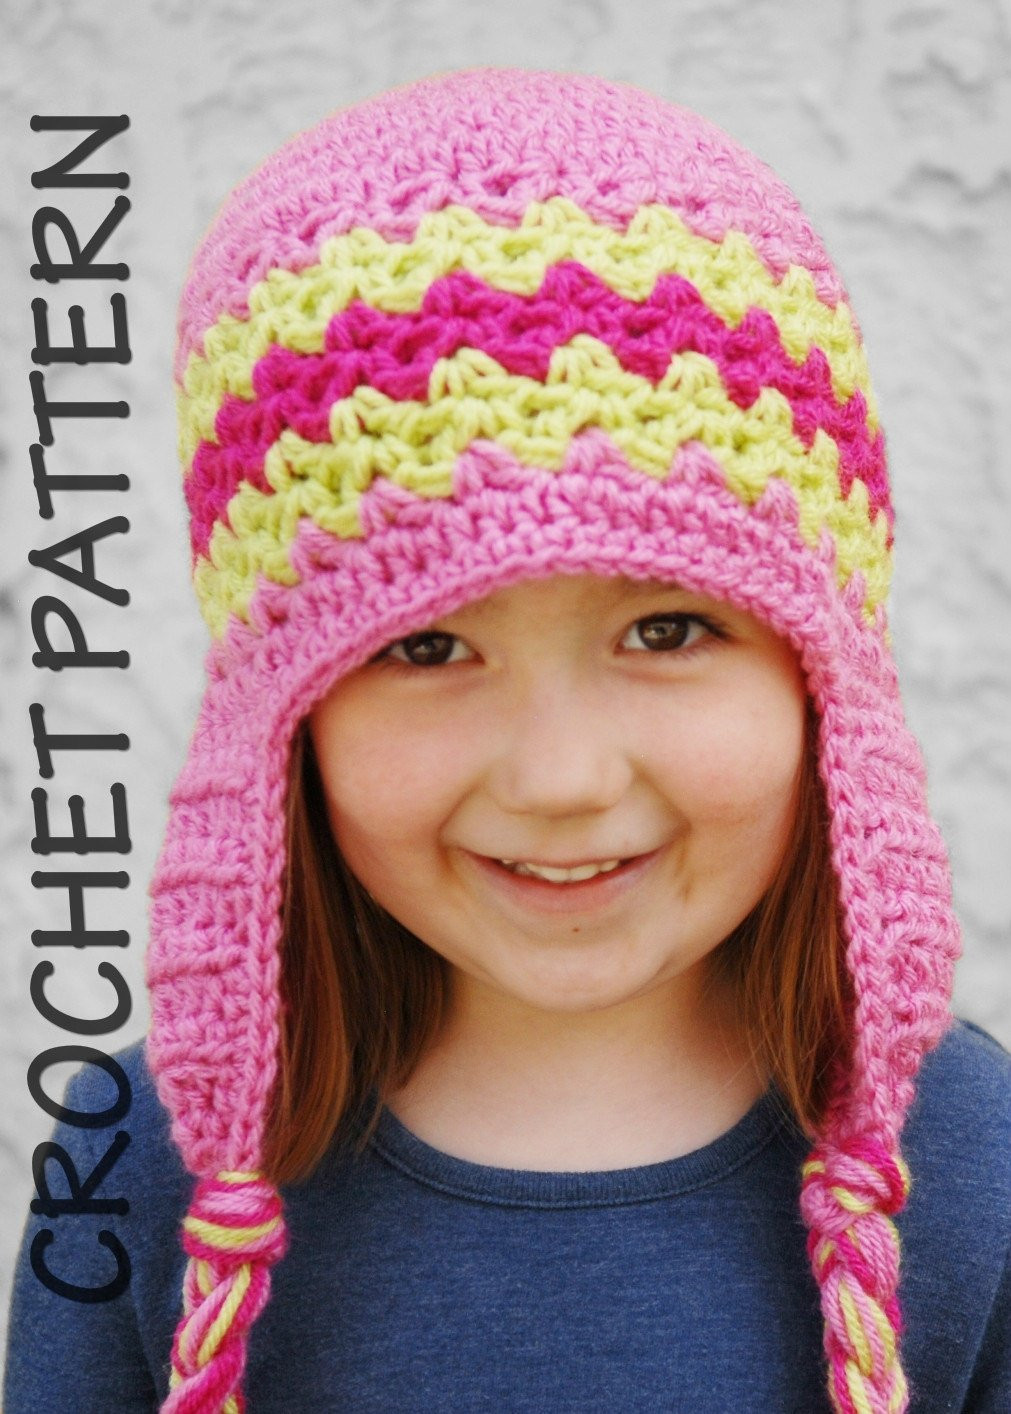 Crochet Hats for Kids Awesome Childrens Hats Patterns Free Patterns Of New 45 Ideas Crochet Hats for Kids